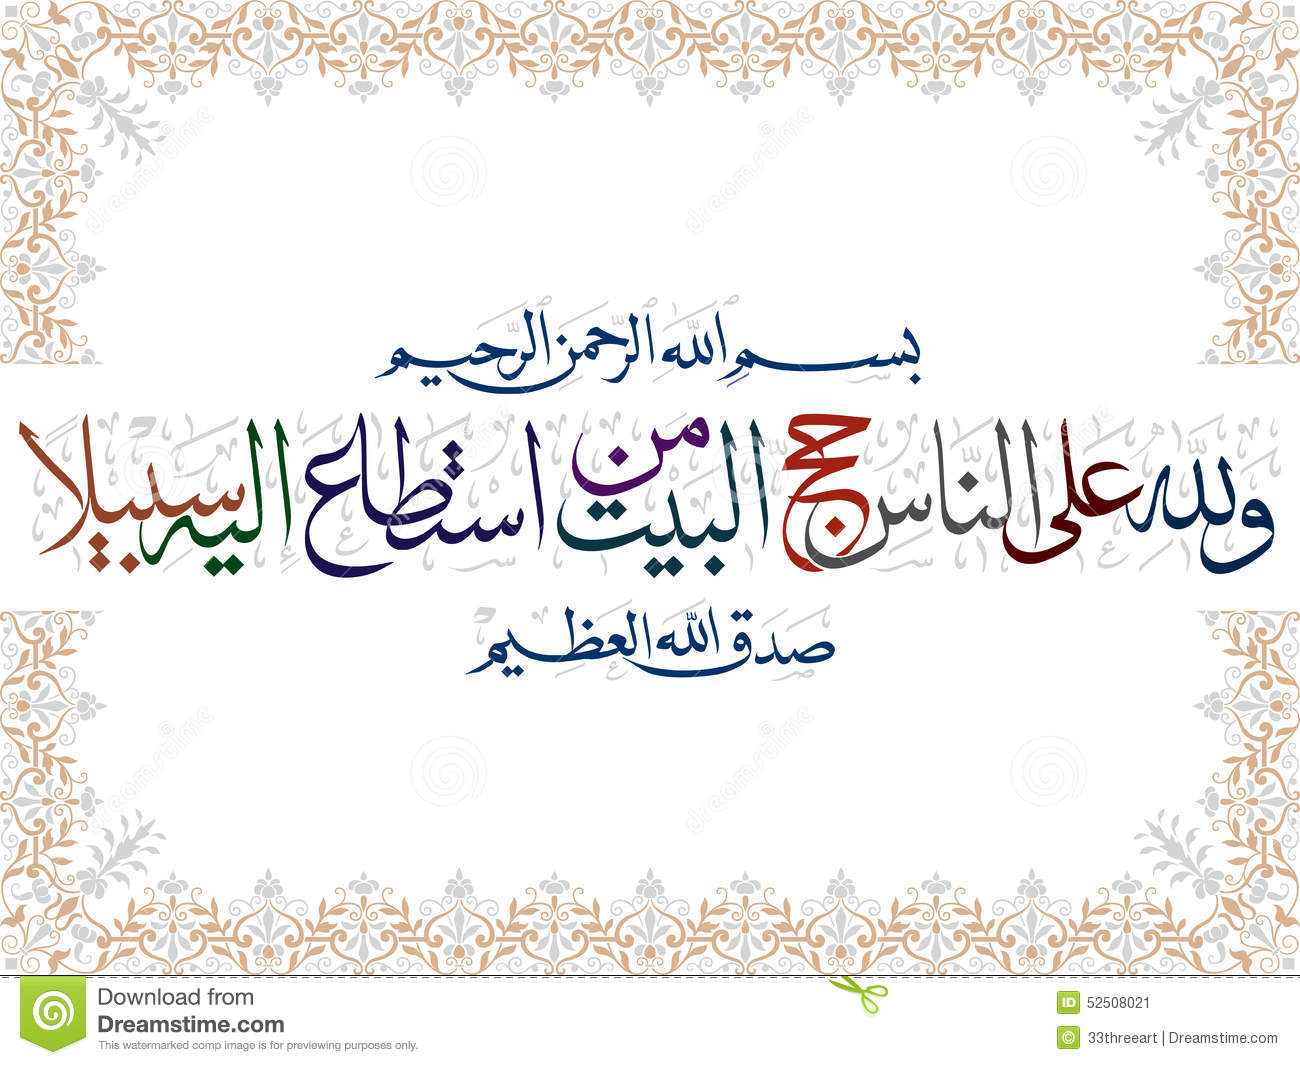 And To Allah From The People Is A Pilgrimage To The House.